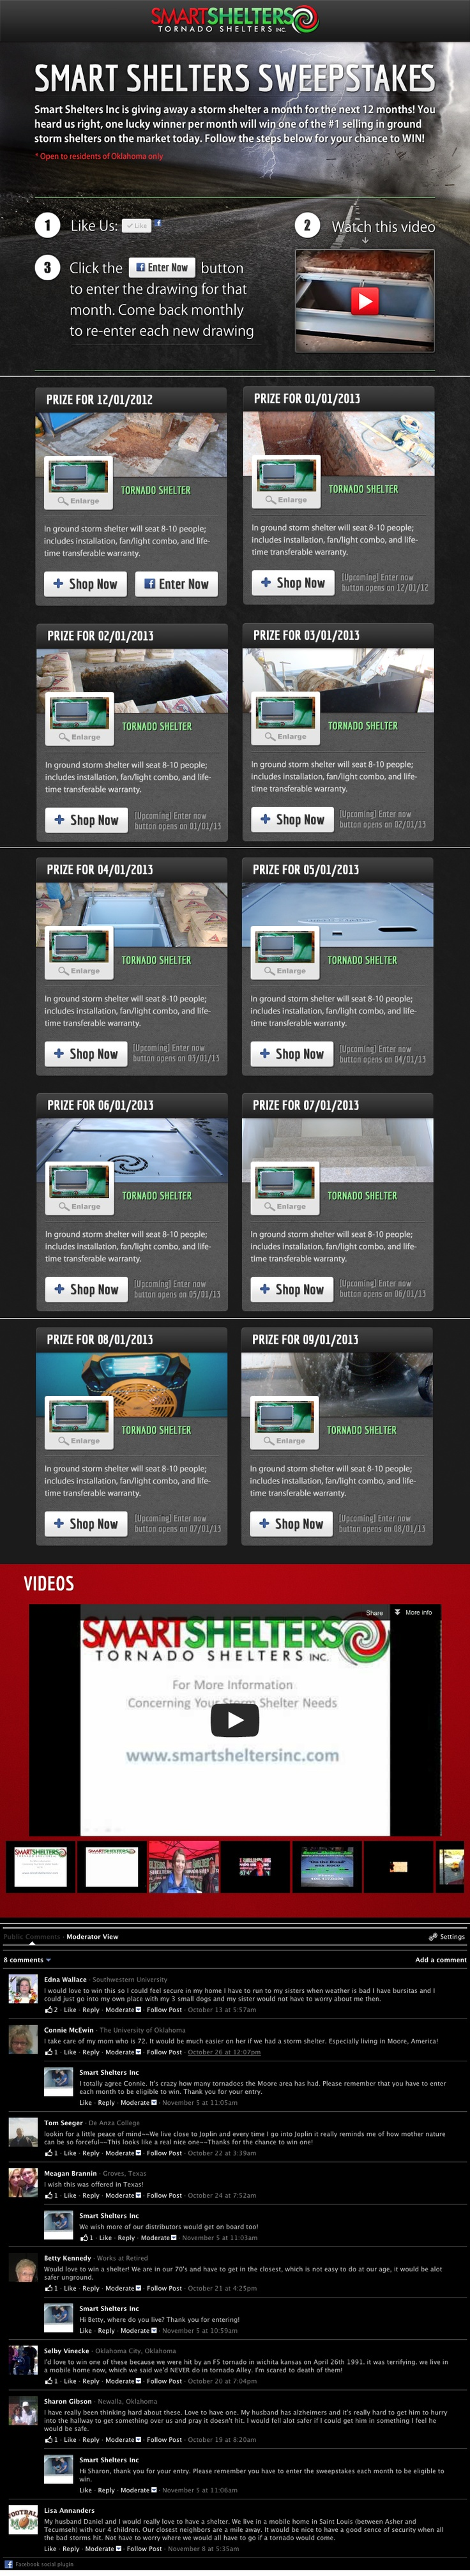 Smart Shelters Sweepstakes. This is a 12 month long multi-staged campaigns giving away